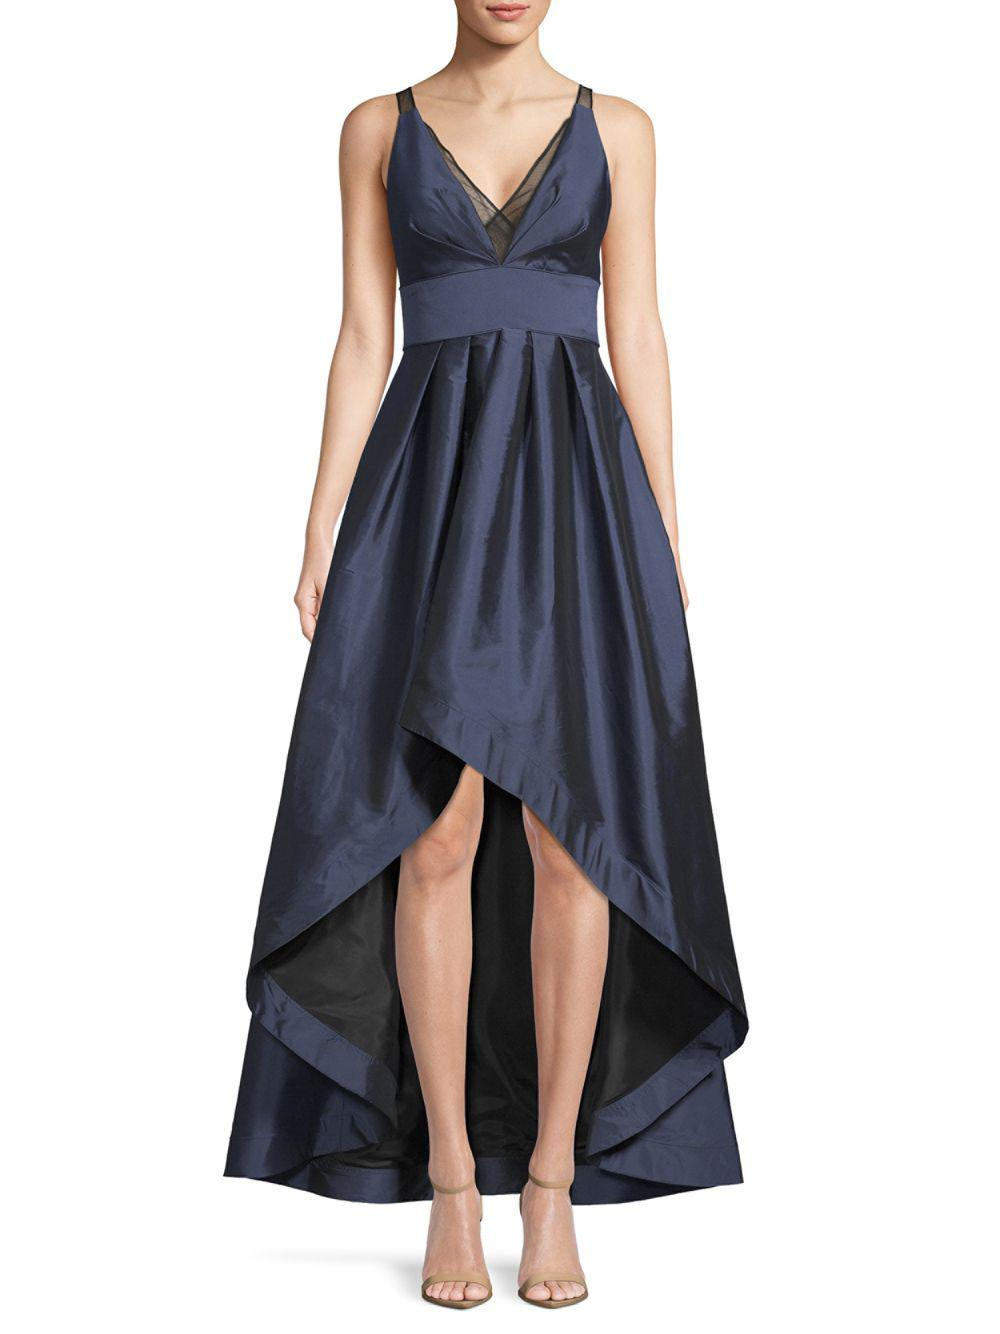 Lyst - Aidan Mattox Deep V-neck Hi-lo Ball Gown in Blue - Save ...